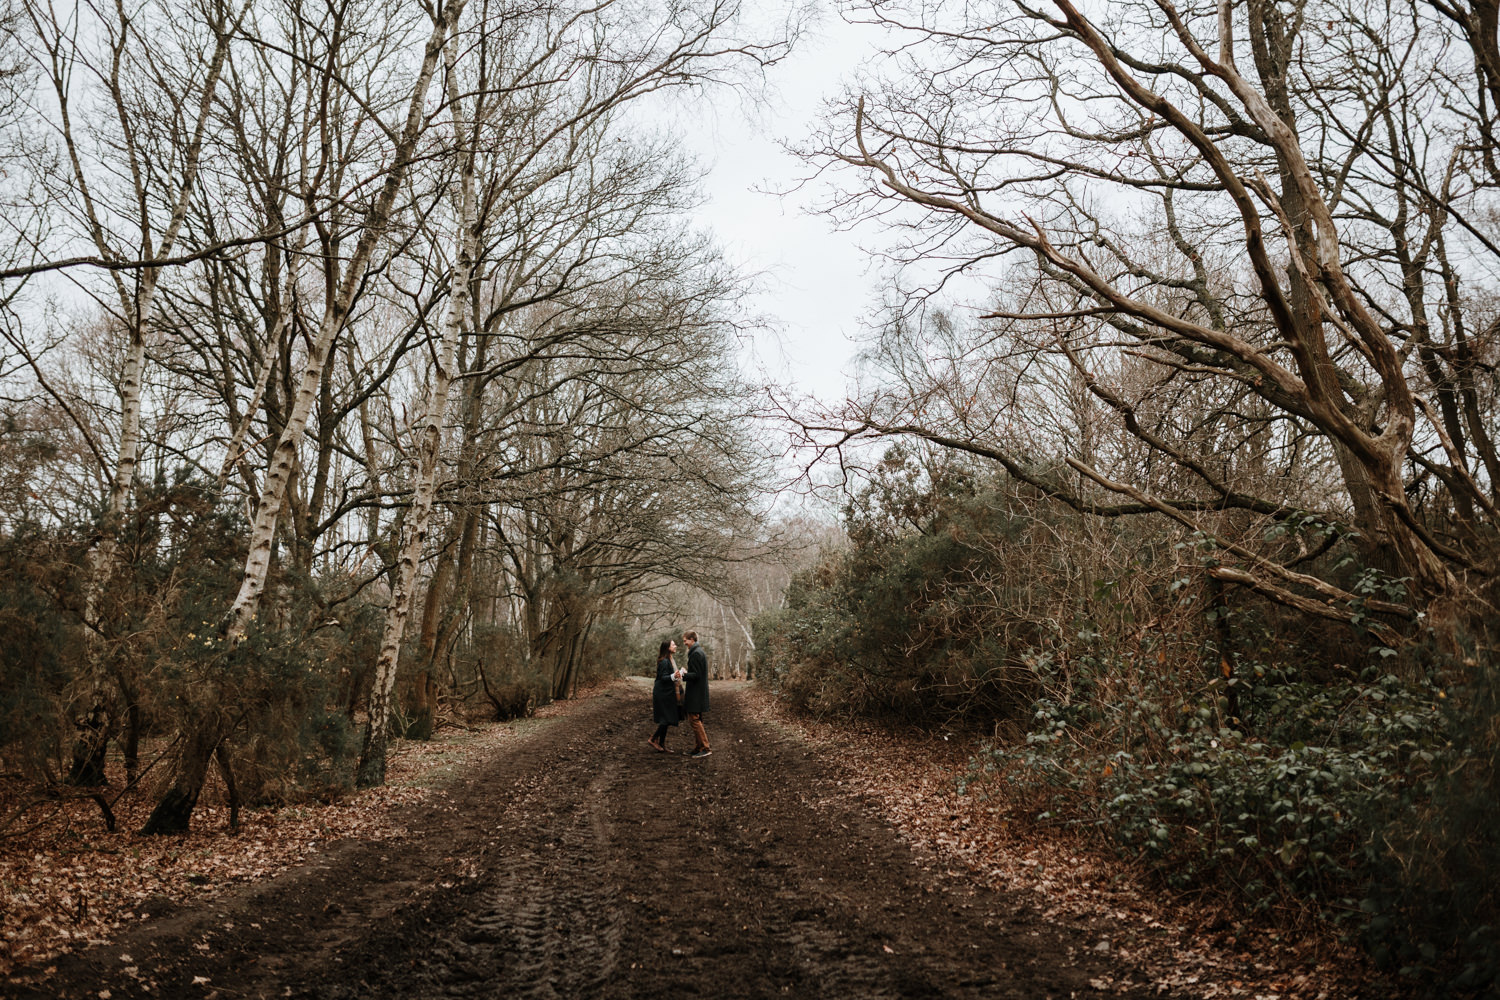 engagement park in Wimbledon Common, london, with couple walking on a path in the forest